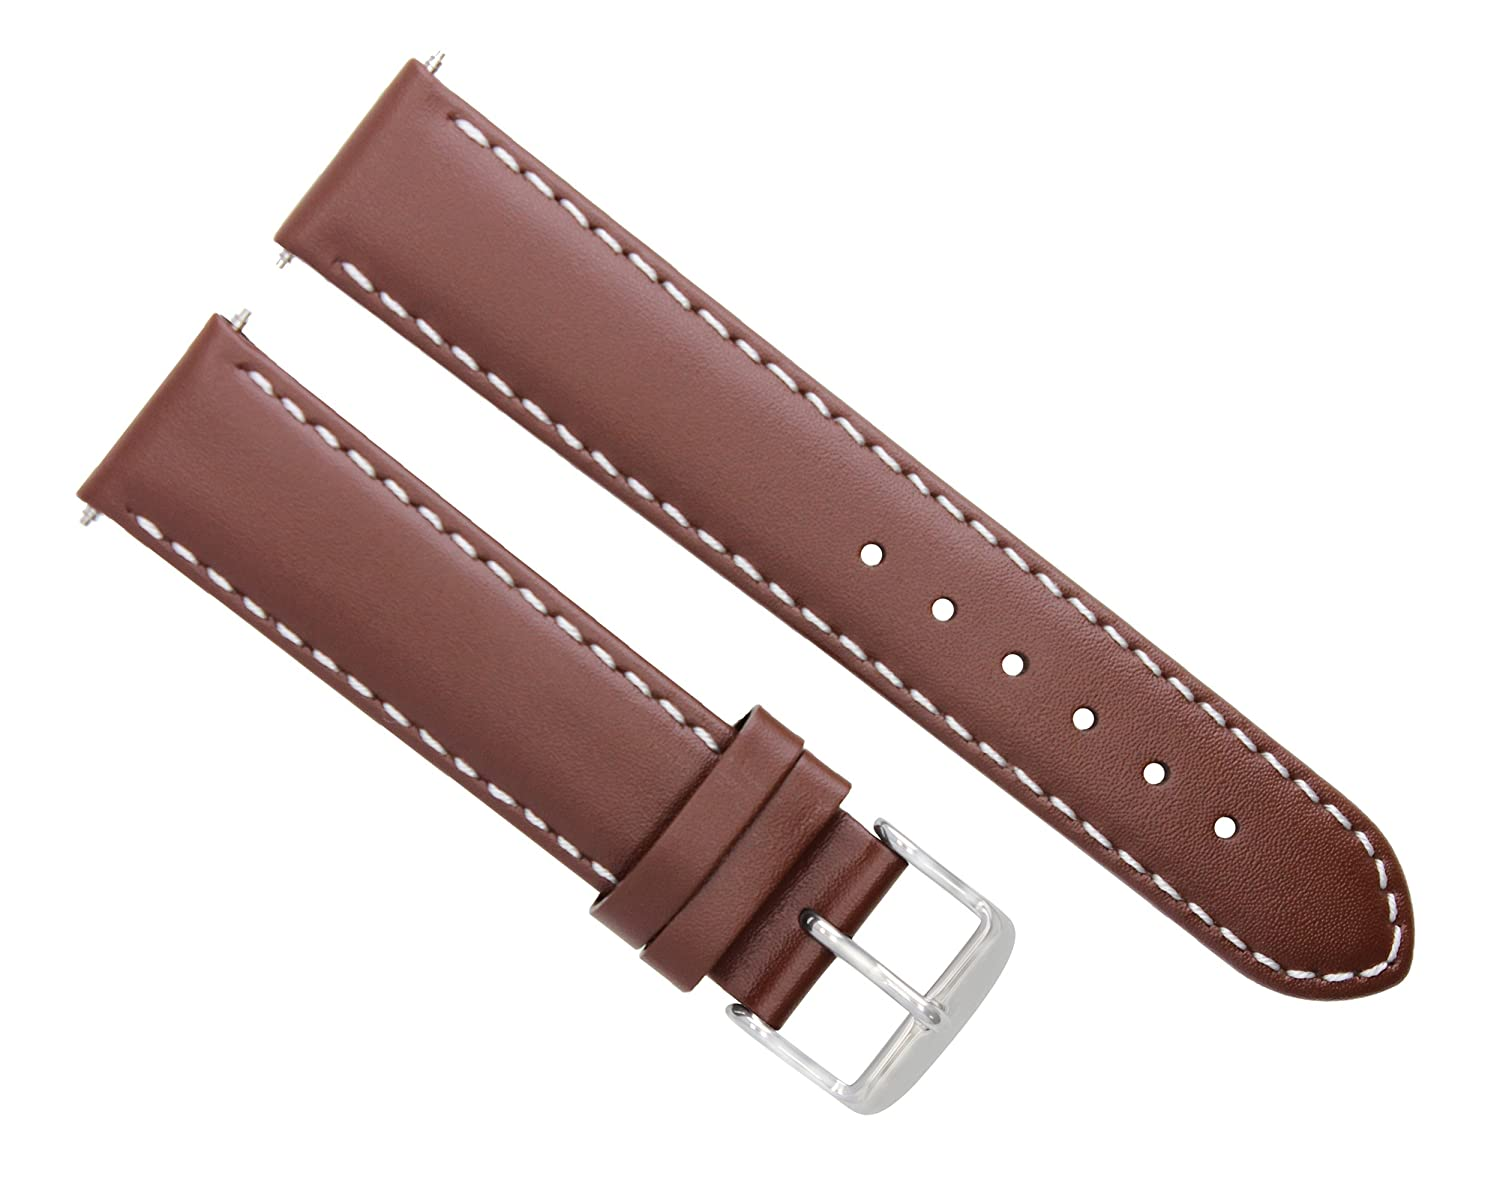 18 – 20 – 22 – 24 mmレザースムースバンドストラップClasp for Franck Muller l/brown # 4 19mm-18mm Light Brown with white stitching  Light Brown with white stitching 19mm-18mm B07F1Z5R7L